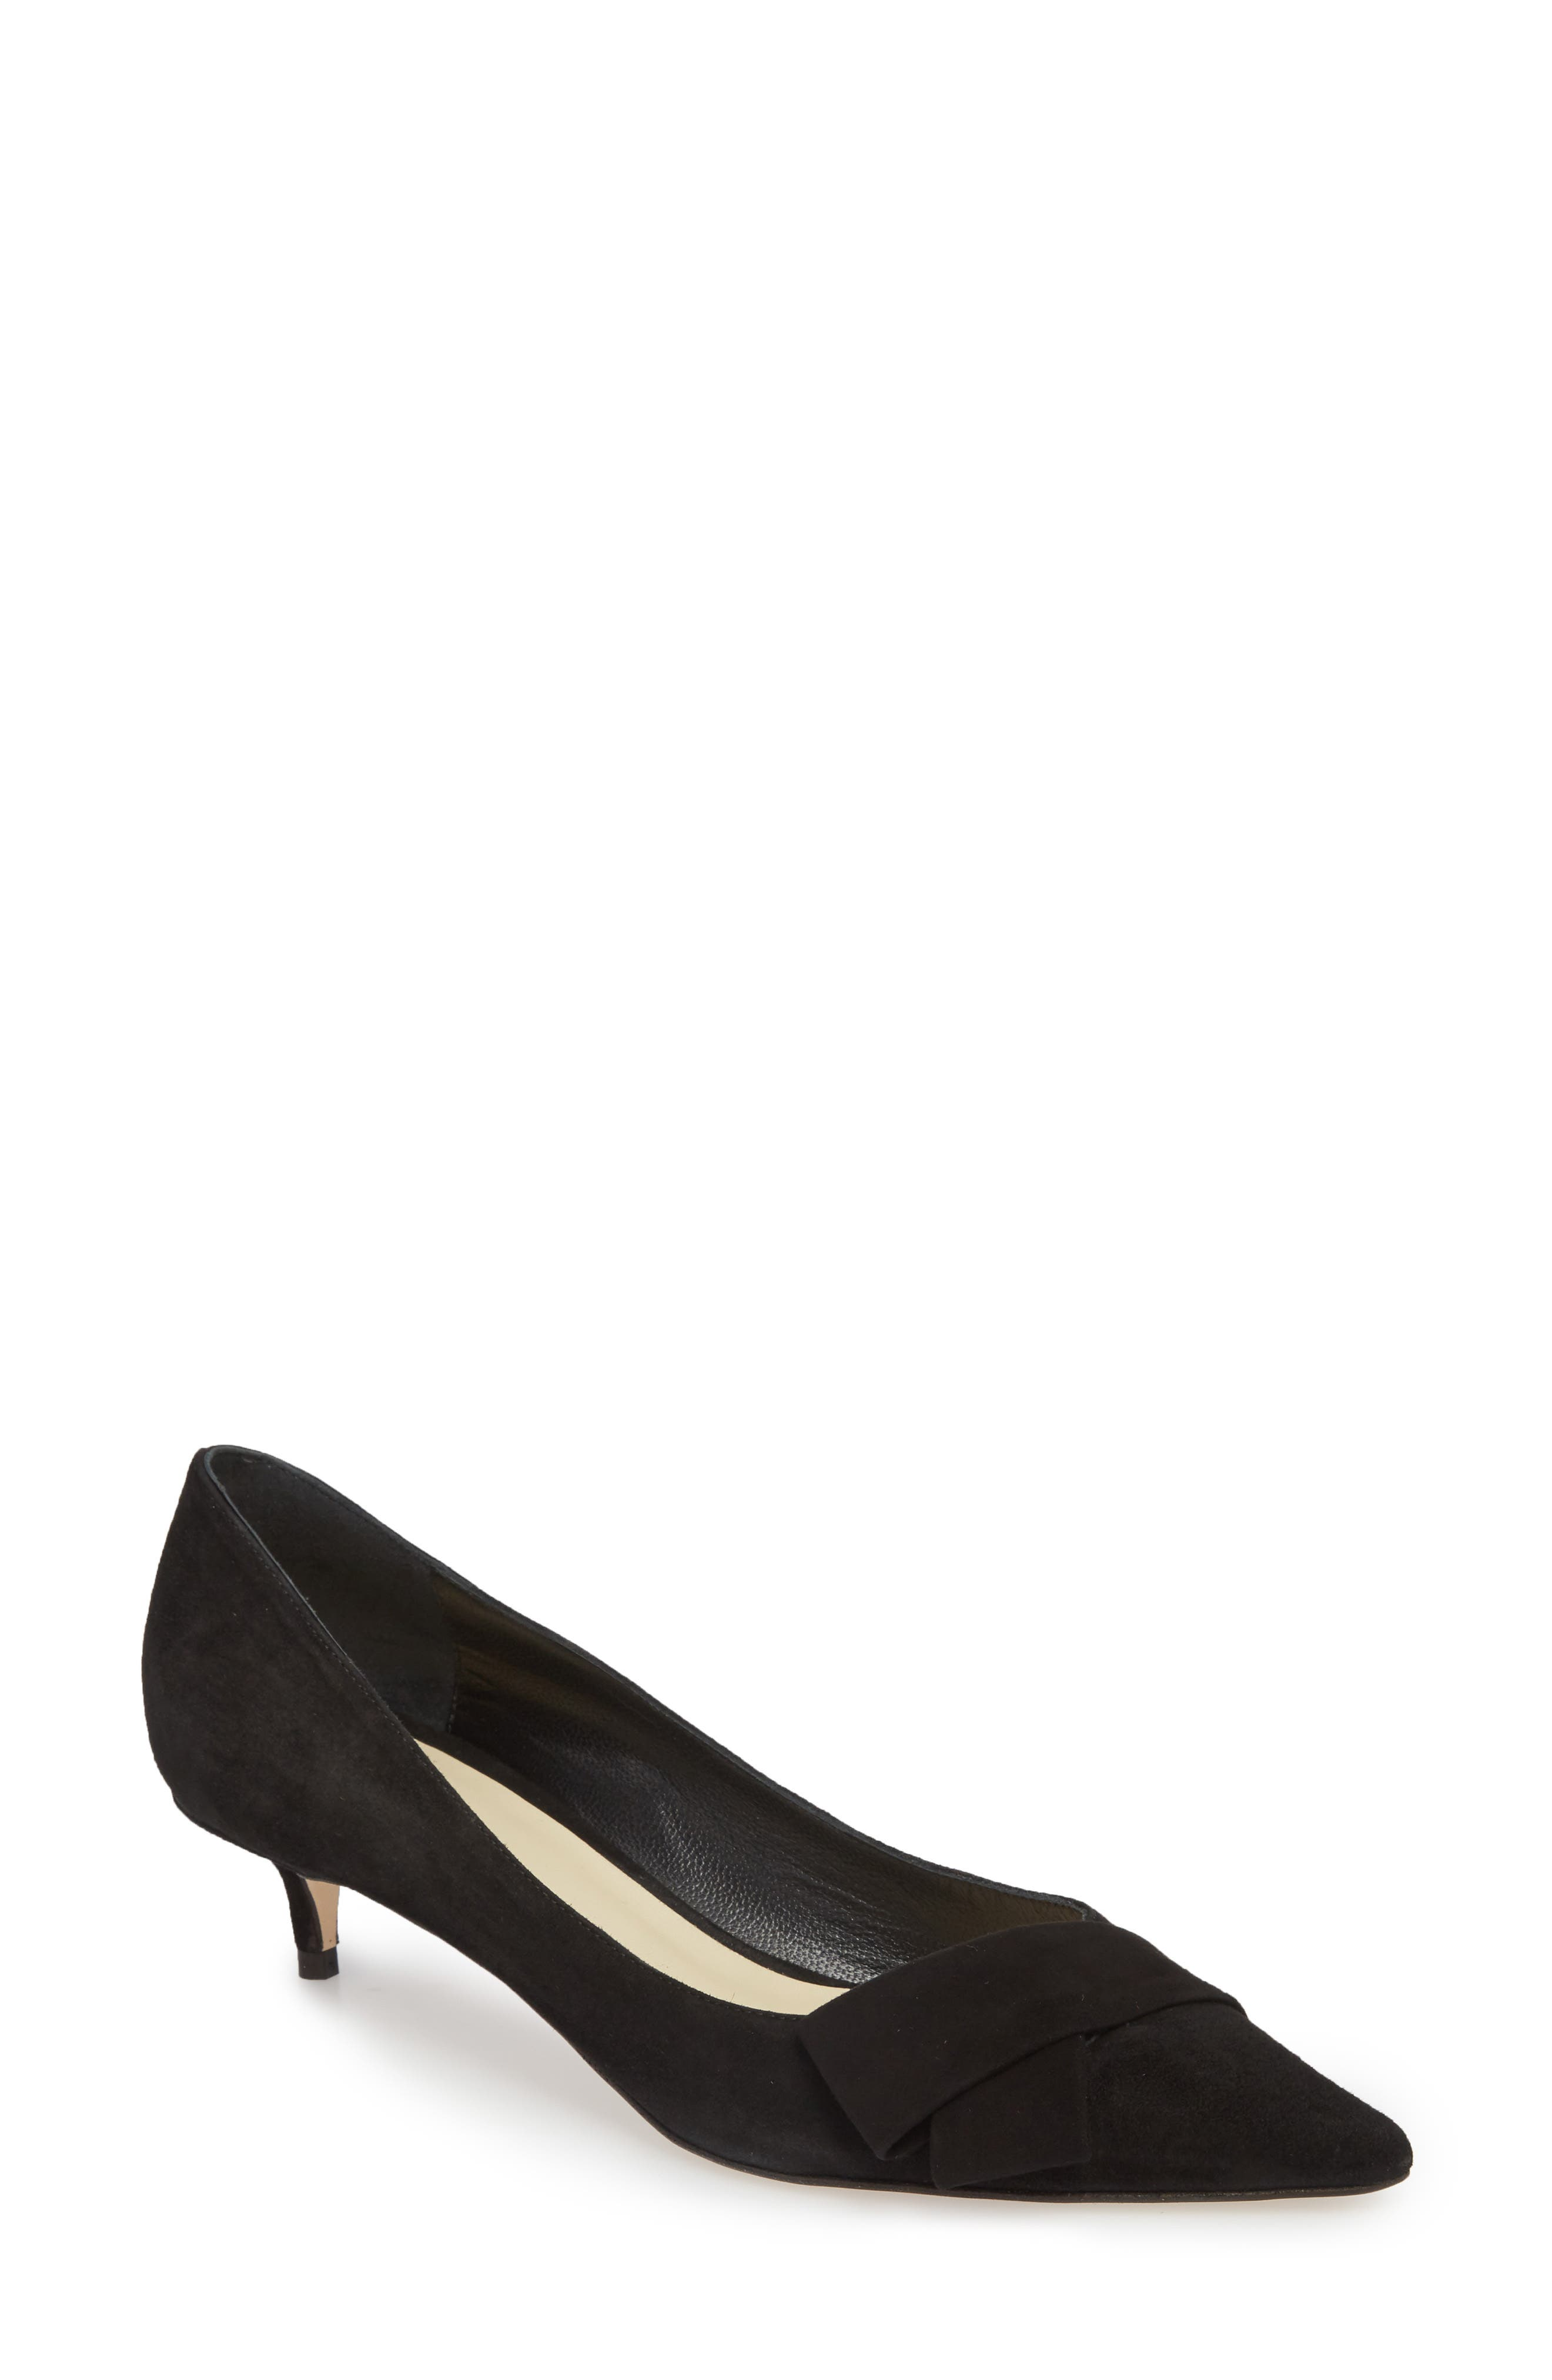 Butter Bliss Pointy Toe Pump,                         Main,                         color, Black Suede